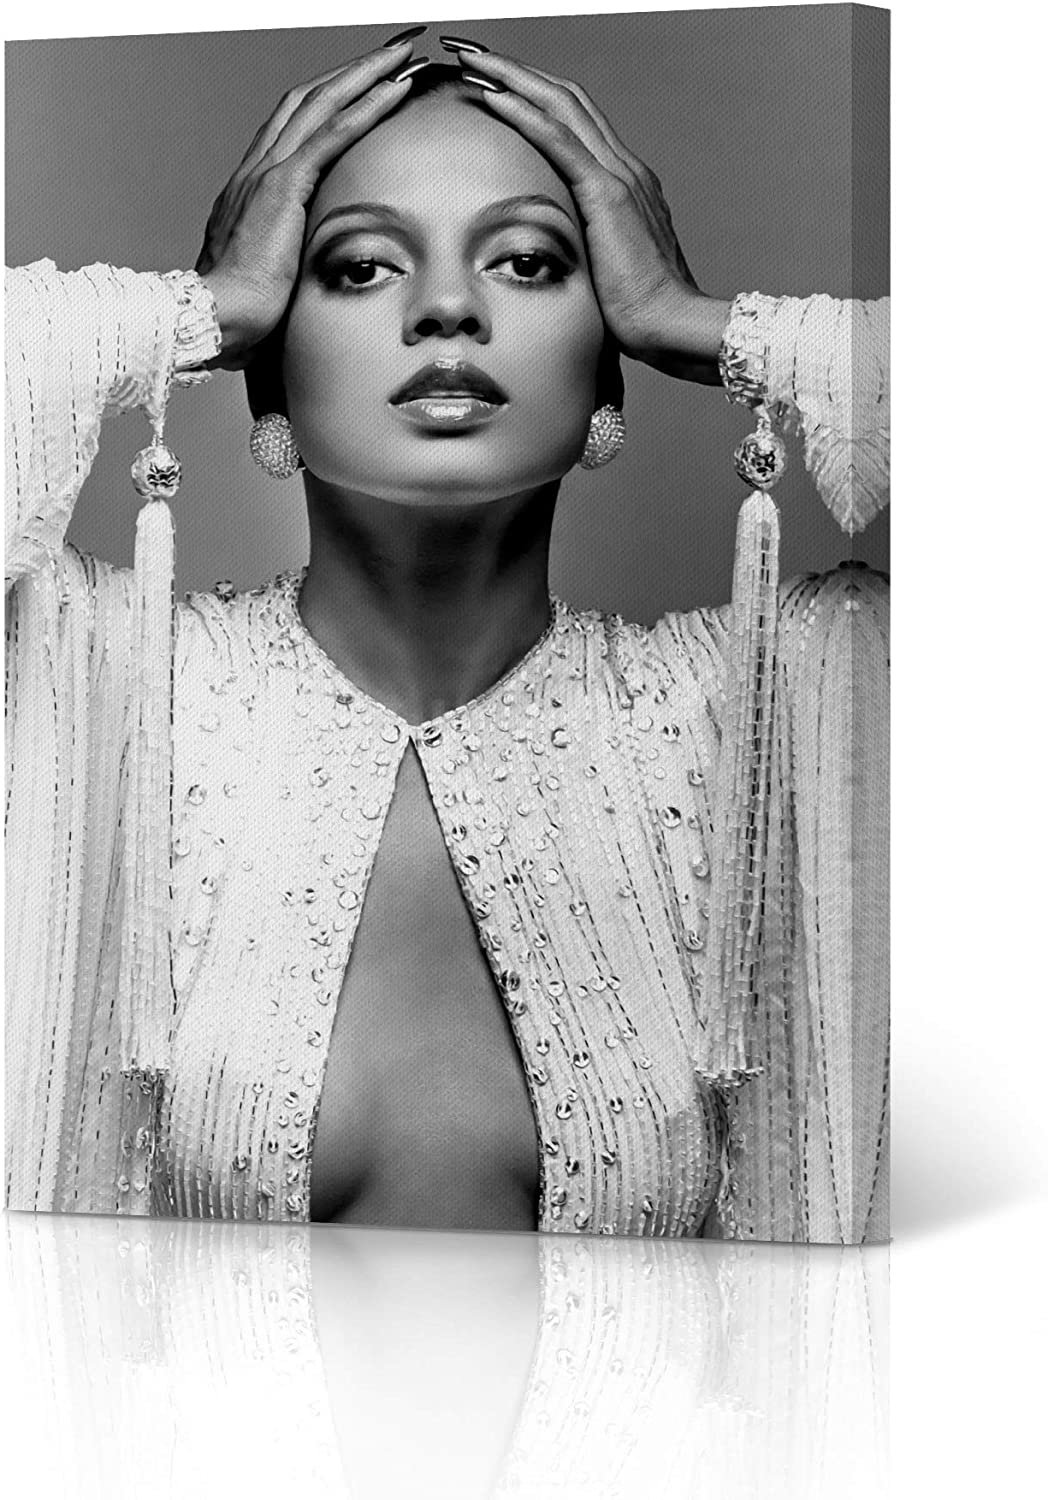 Amazon Com Hb Art Design Diana Ross In Fancy White Dress Black And White Canvas Wall Art Print Beautiful African American Art Icon Artwork Living Room Bedroom Decor Home Decor Made In Usa